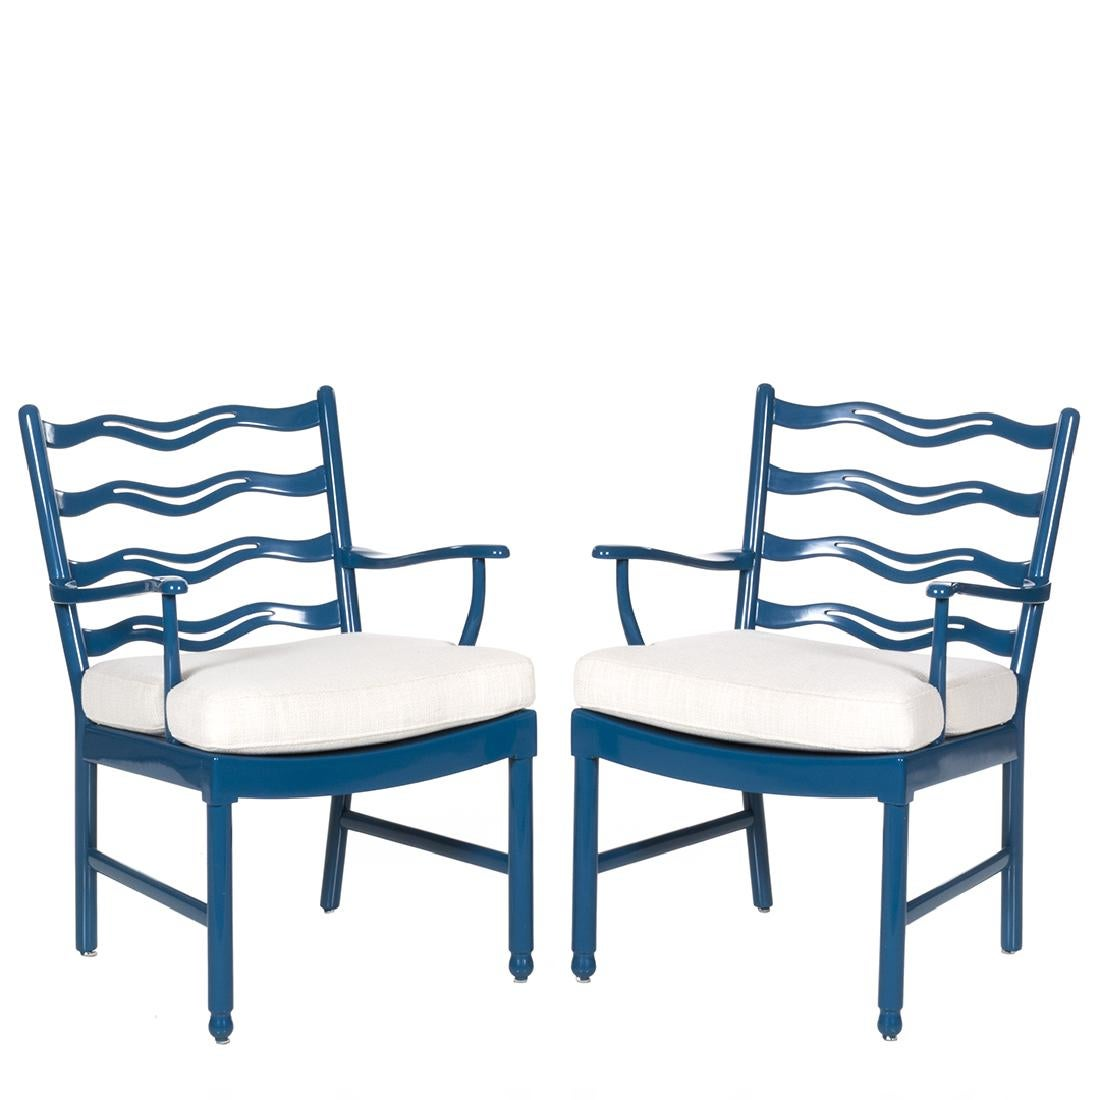 Ole Wanscher Colonial Chairs (2)